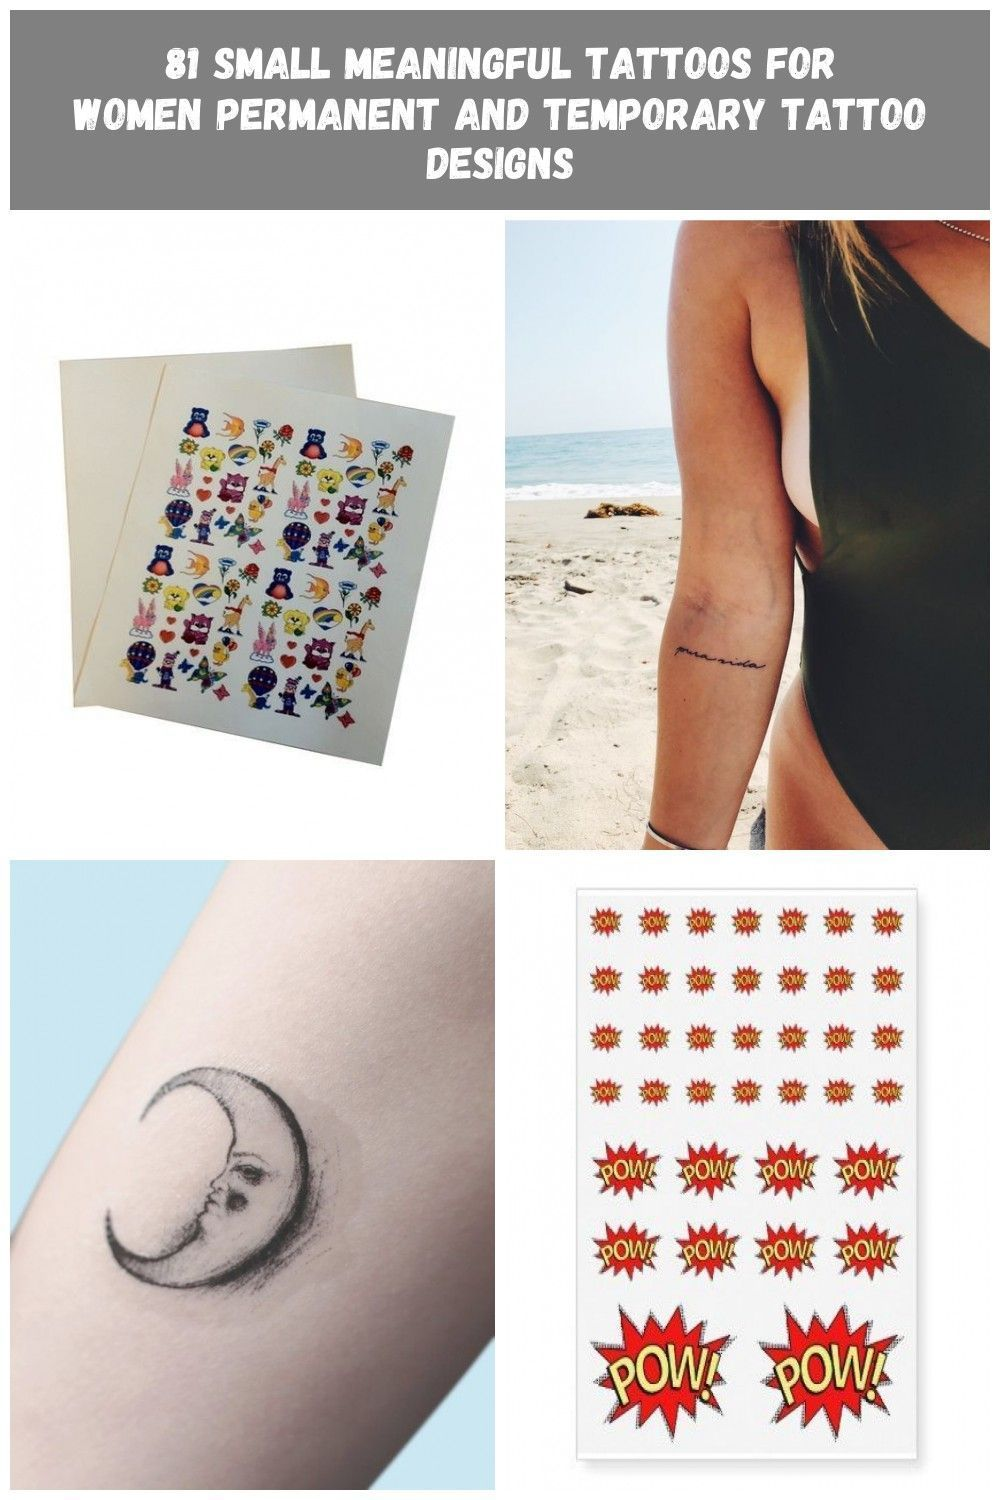 Diy Temporary Tattoo Paper Make Your Own Temporary Tattoos From Home Easily W Diy Temporary In 2020 Tattoo Paper Diy Temporary Tattoos Temporary Tattoo Paper